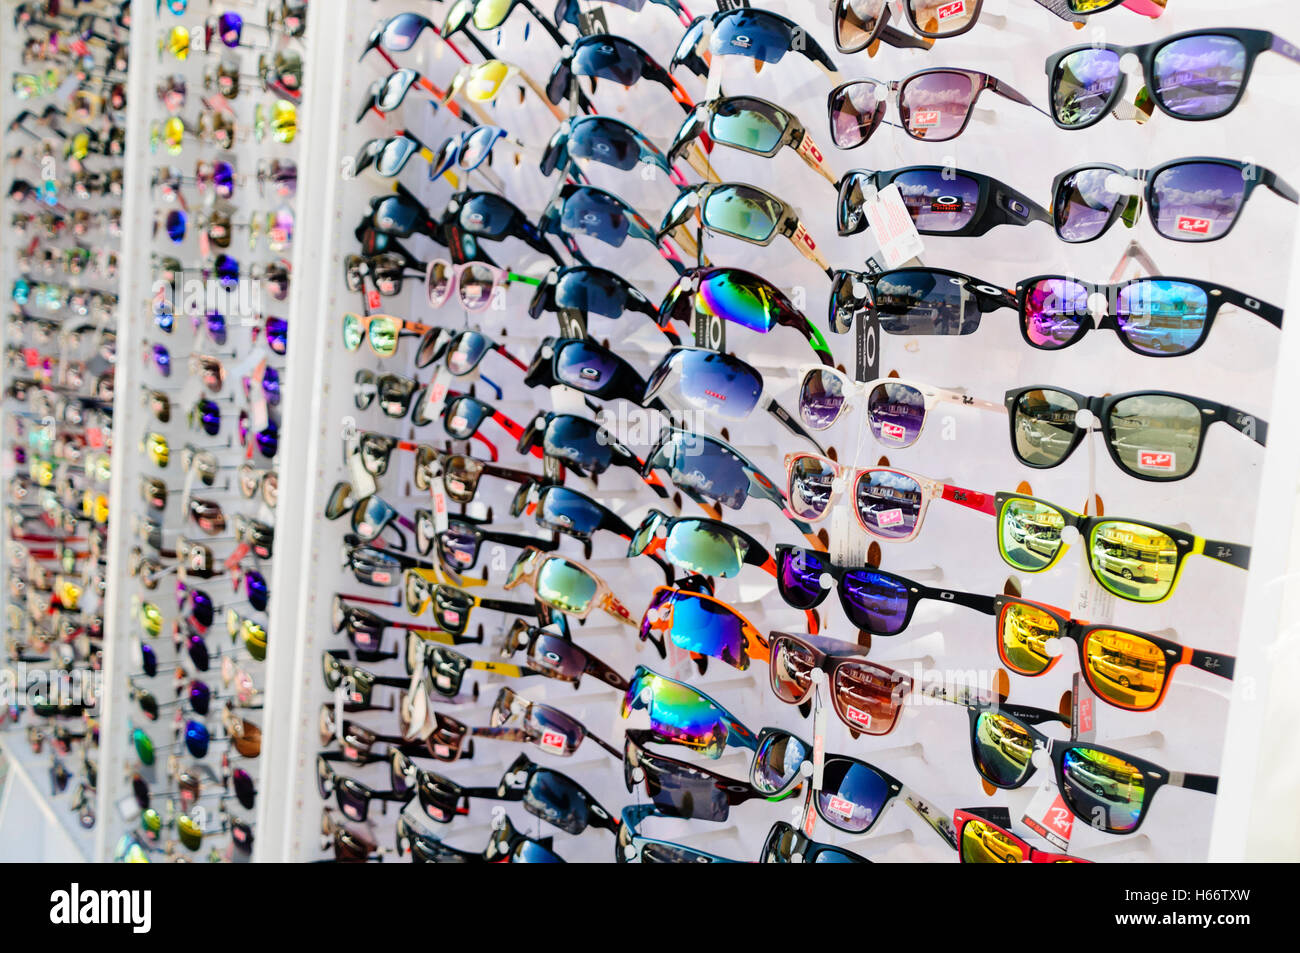 481744977 Shop in Turkey selling counterfeit Rayban and Oakley sunglasses ...